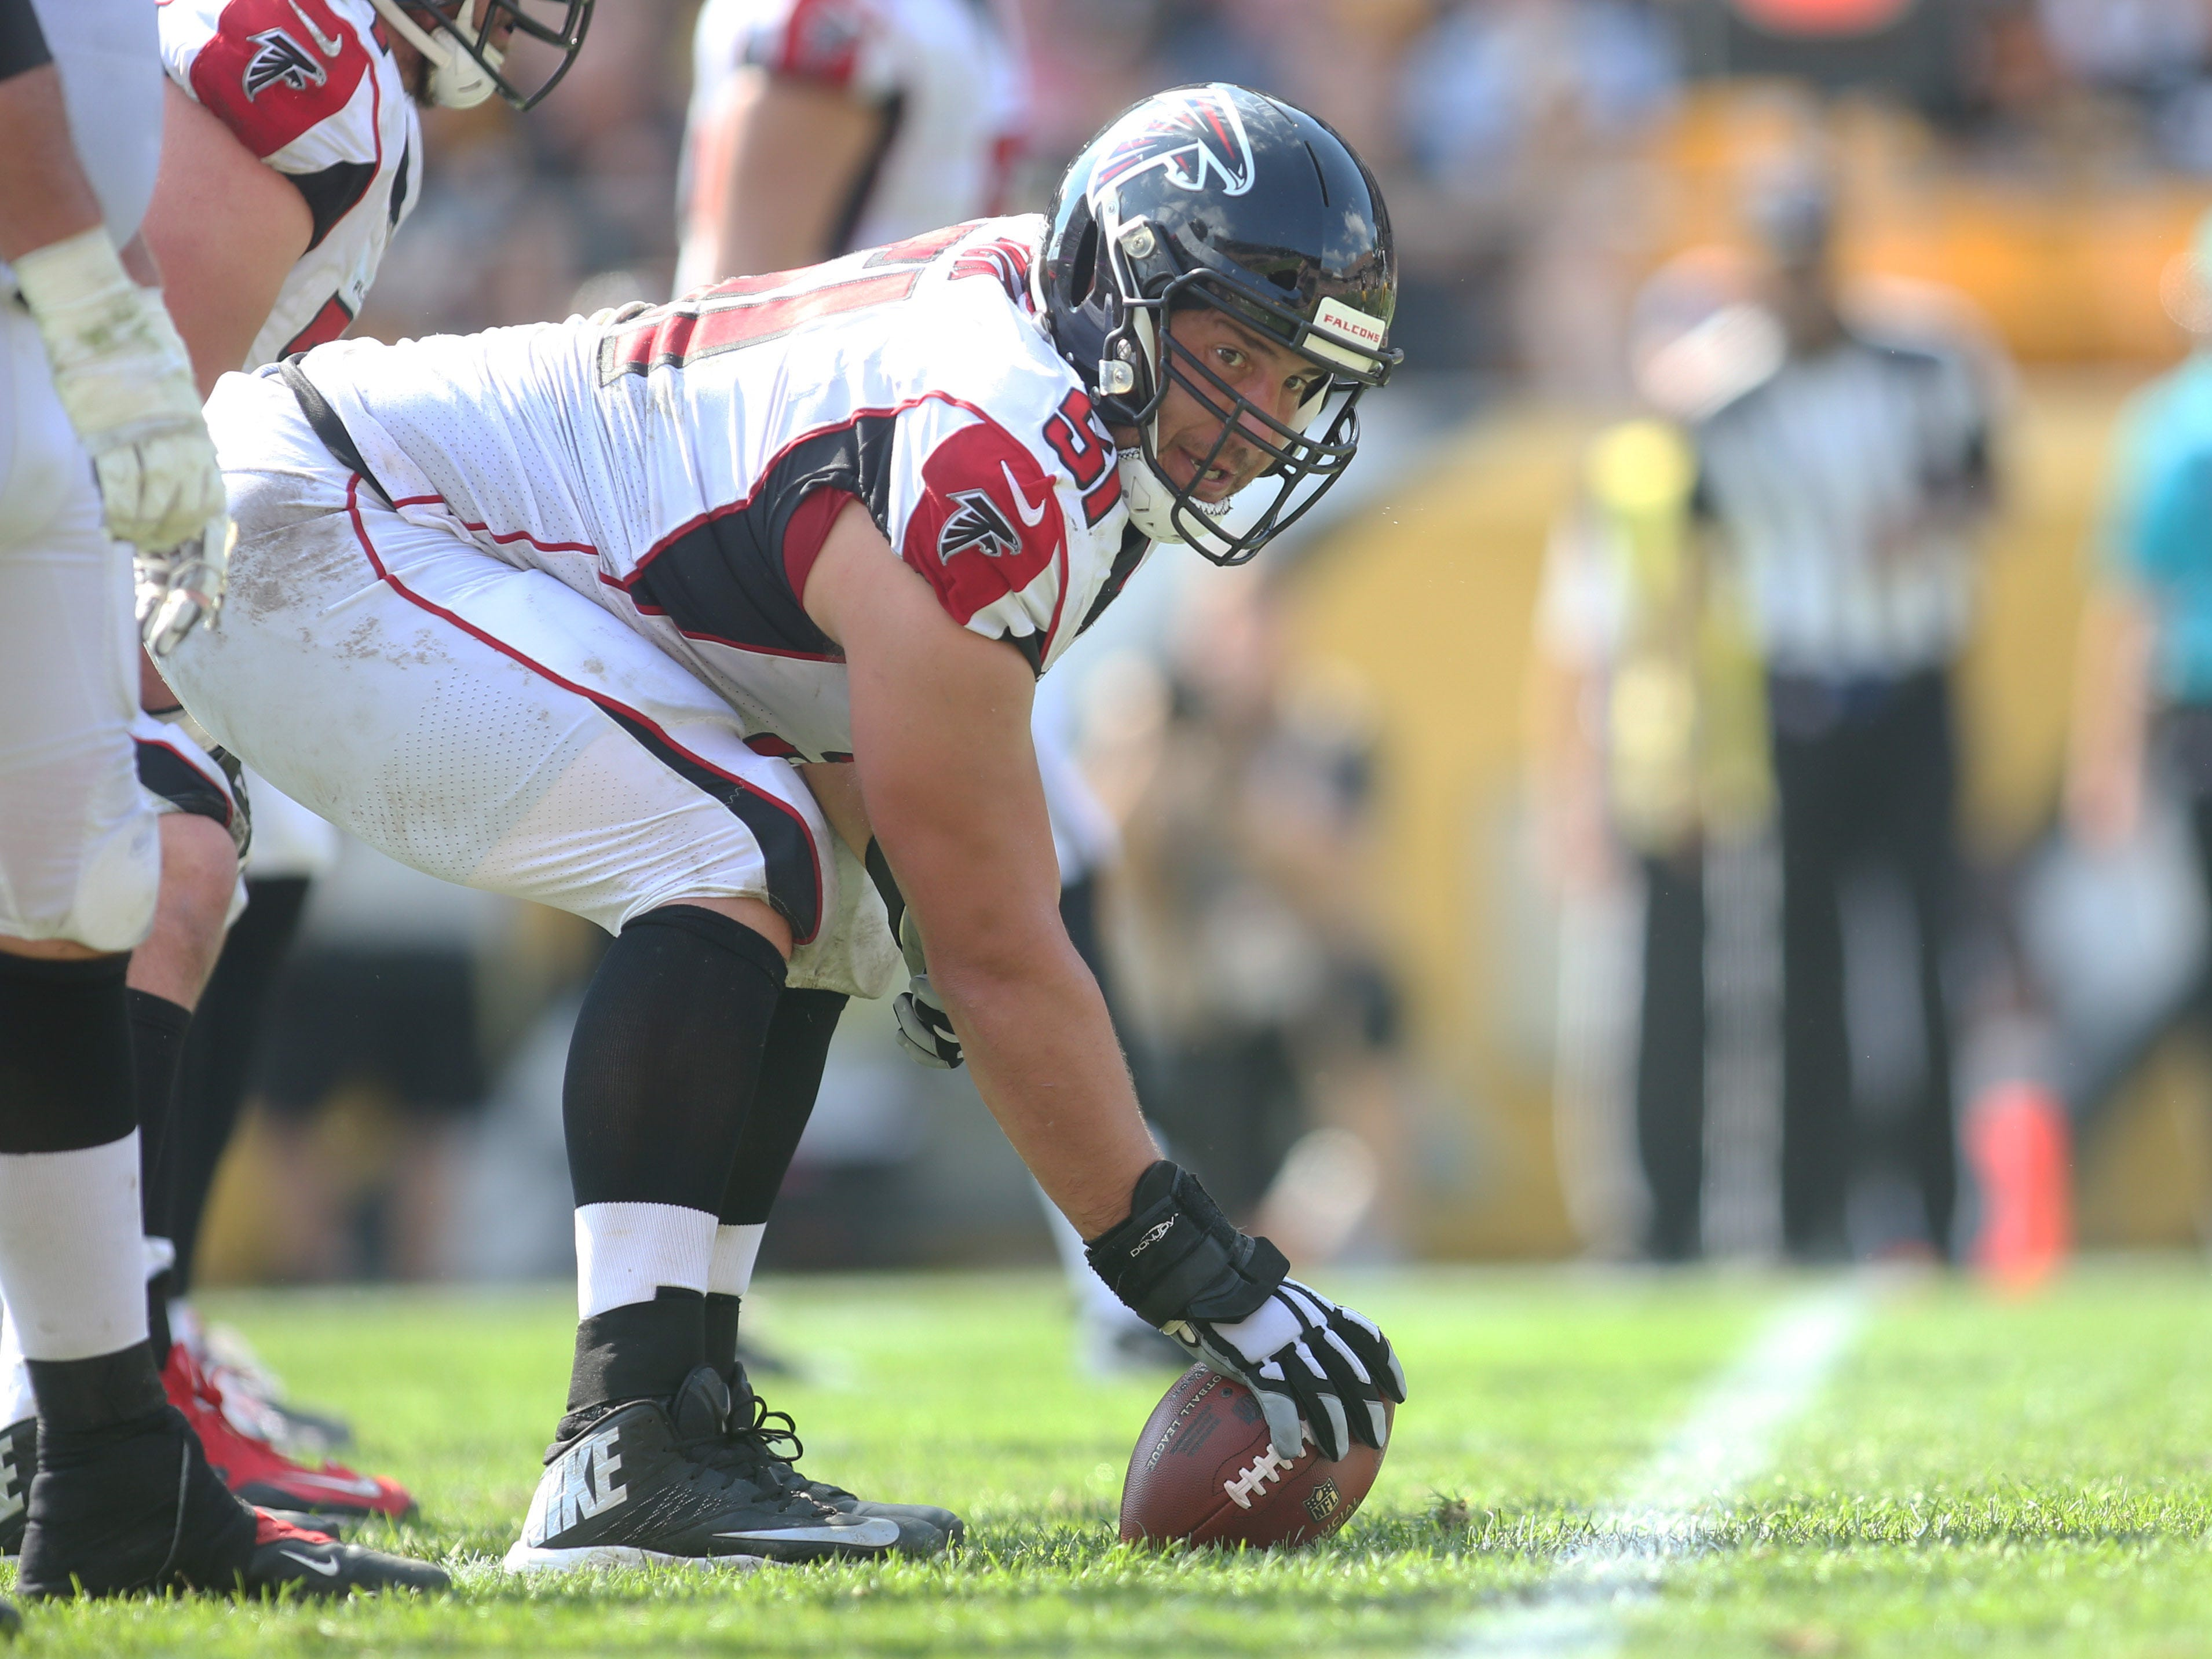 C - Alex Mack, Atlanta Falcons